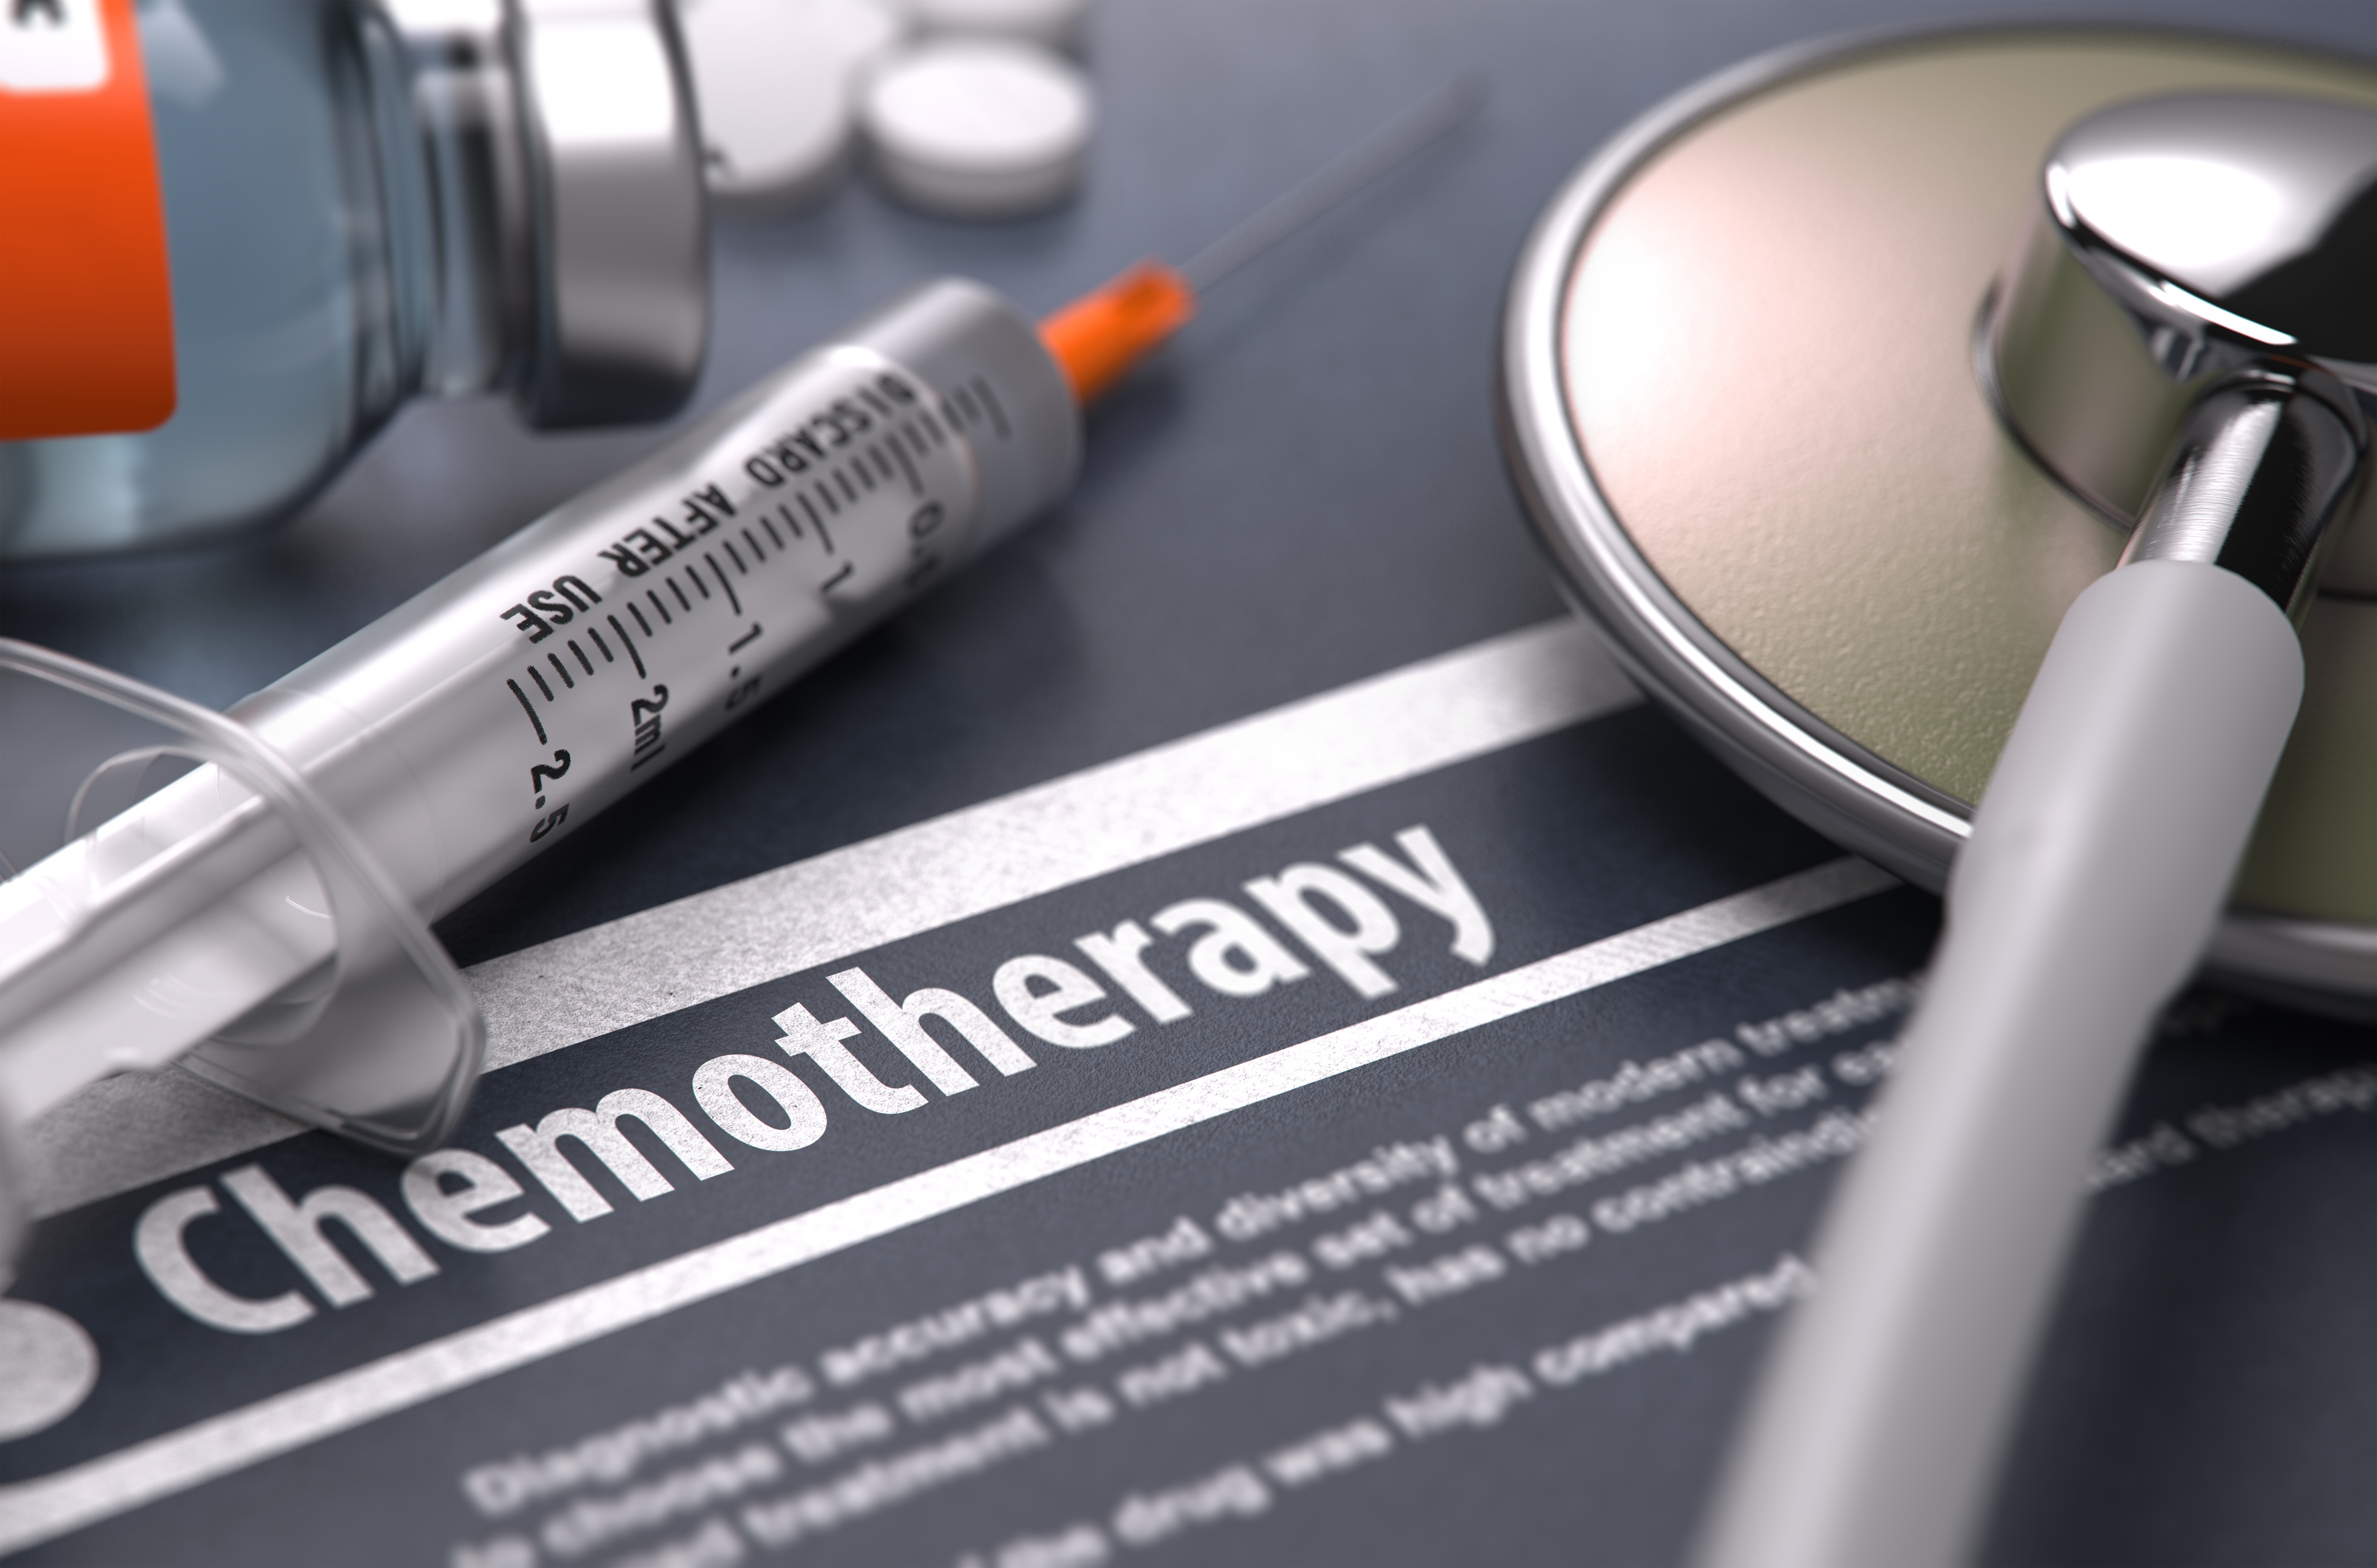 Chemotherapy and Marijuana Information: Treat Chemo Symptoms With Cannabis